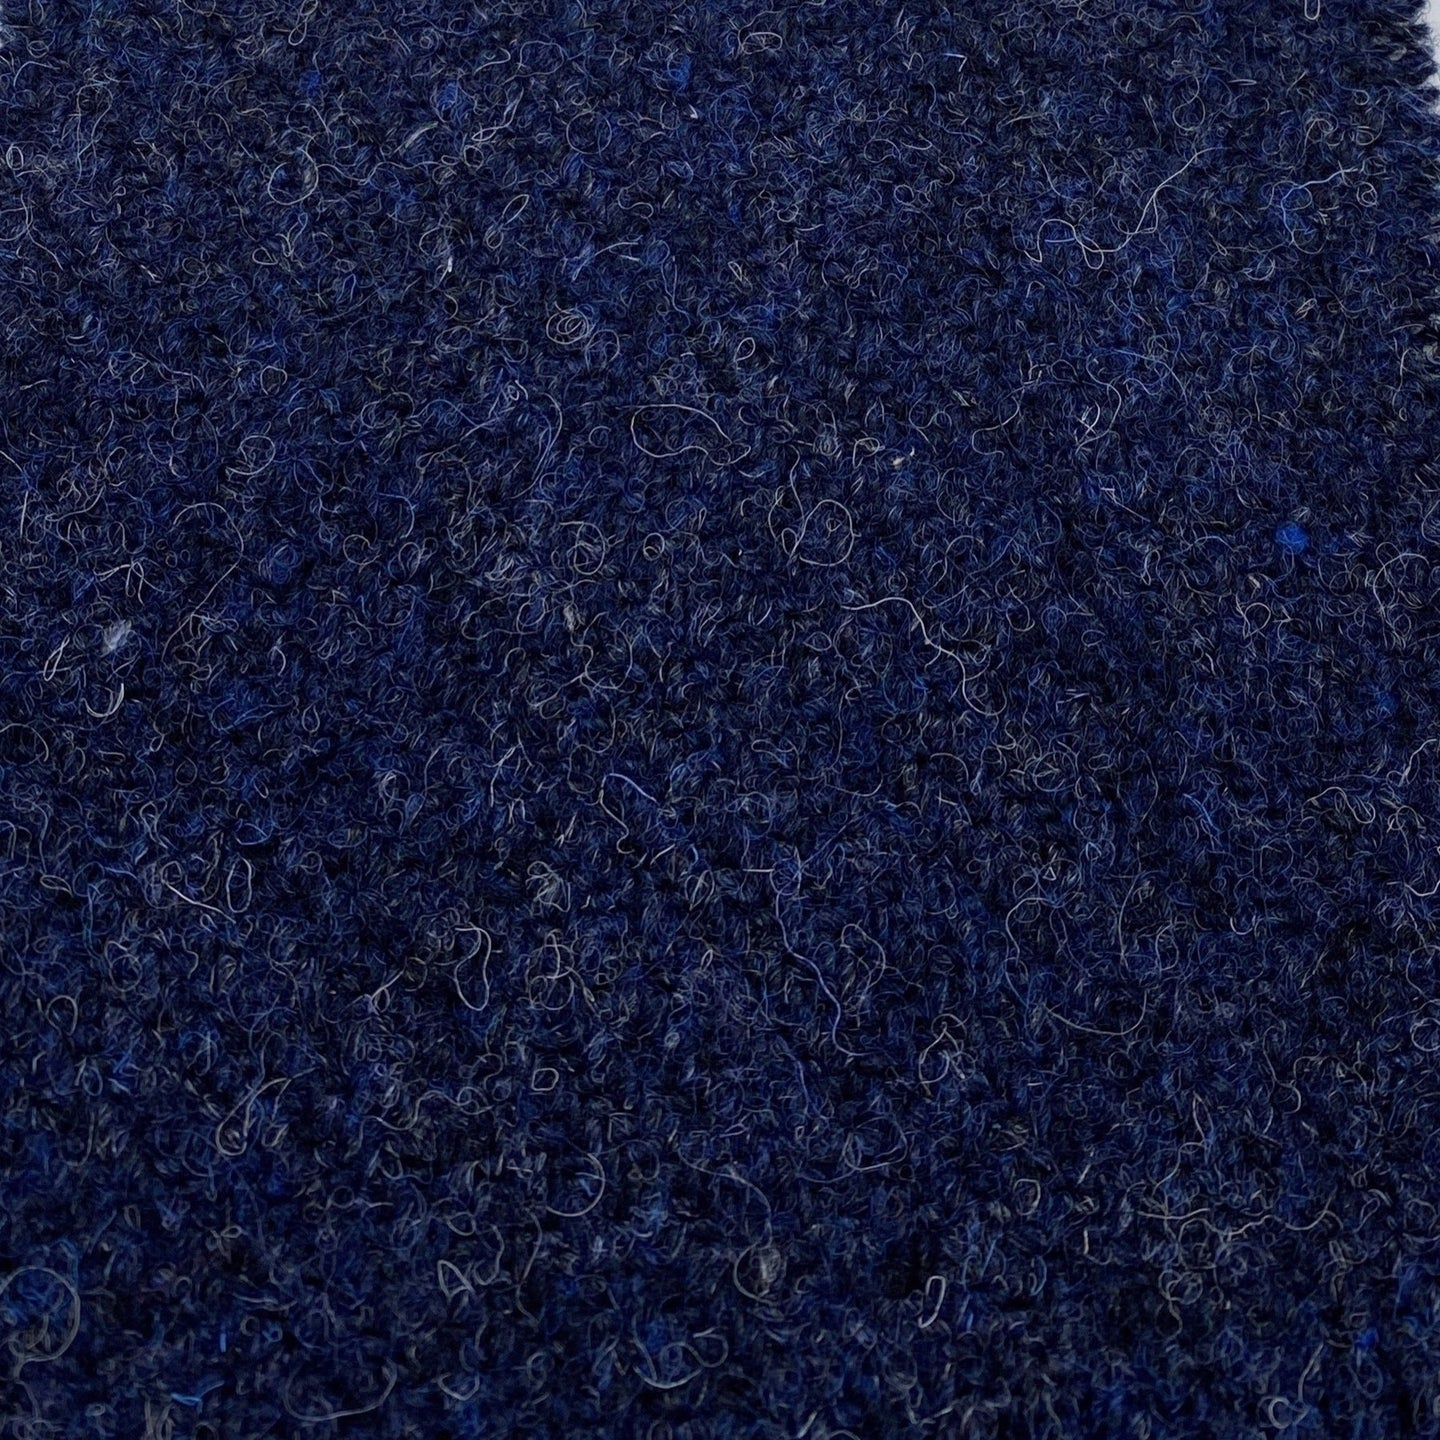 Indigo blue Harris Tweed cloth